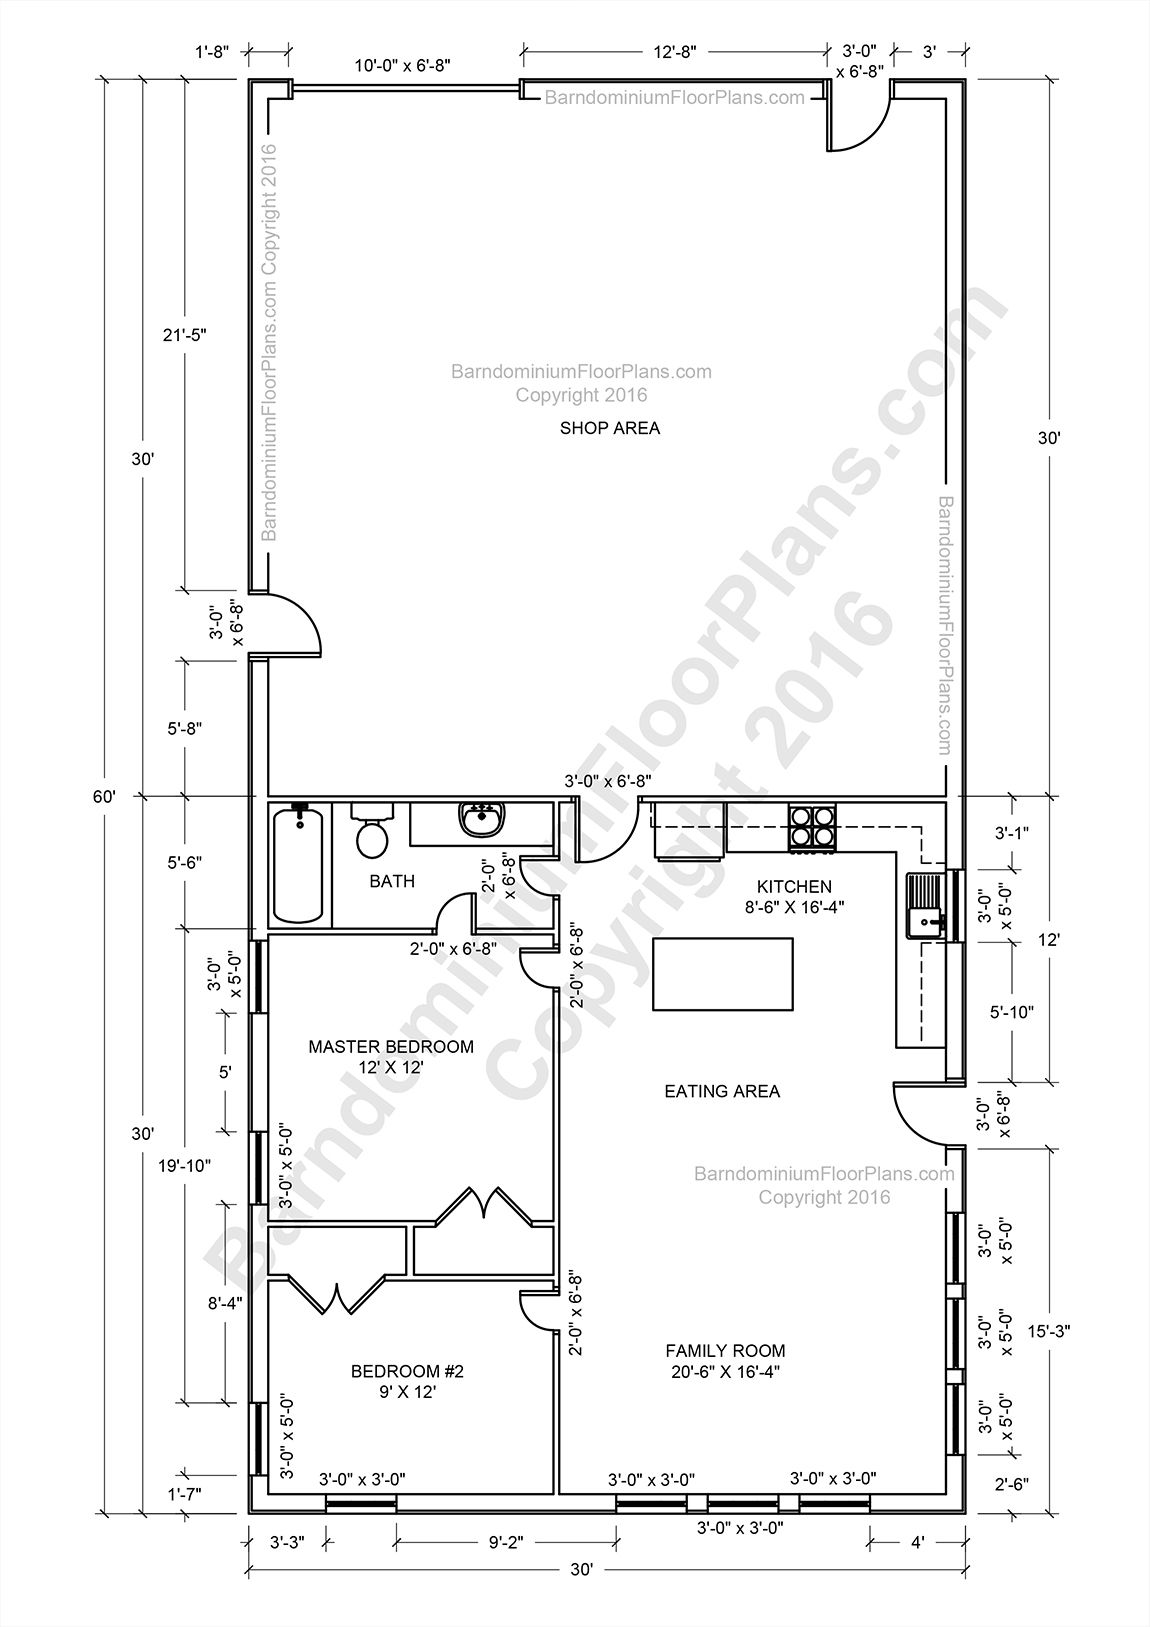 Barndominium floor plans pole barn house plans and metal for 30x40 garage layout